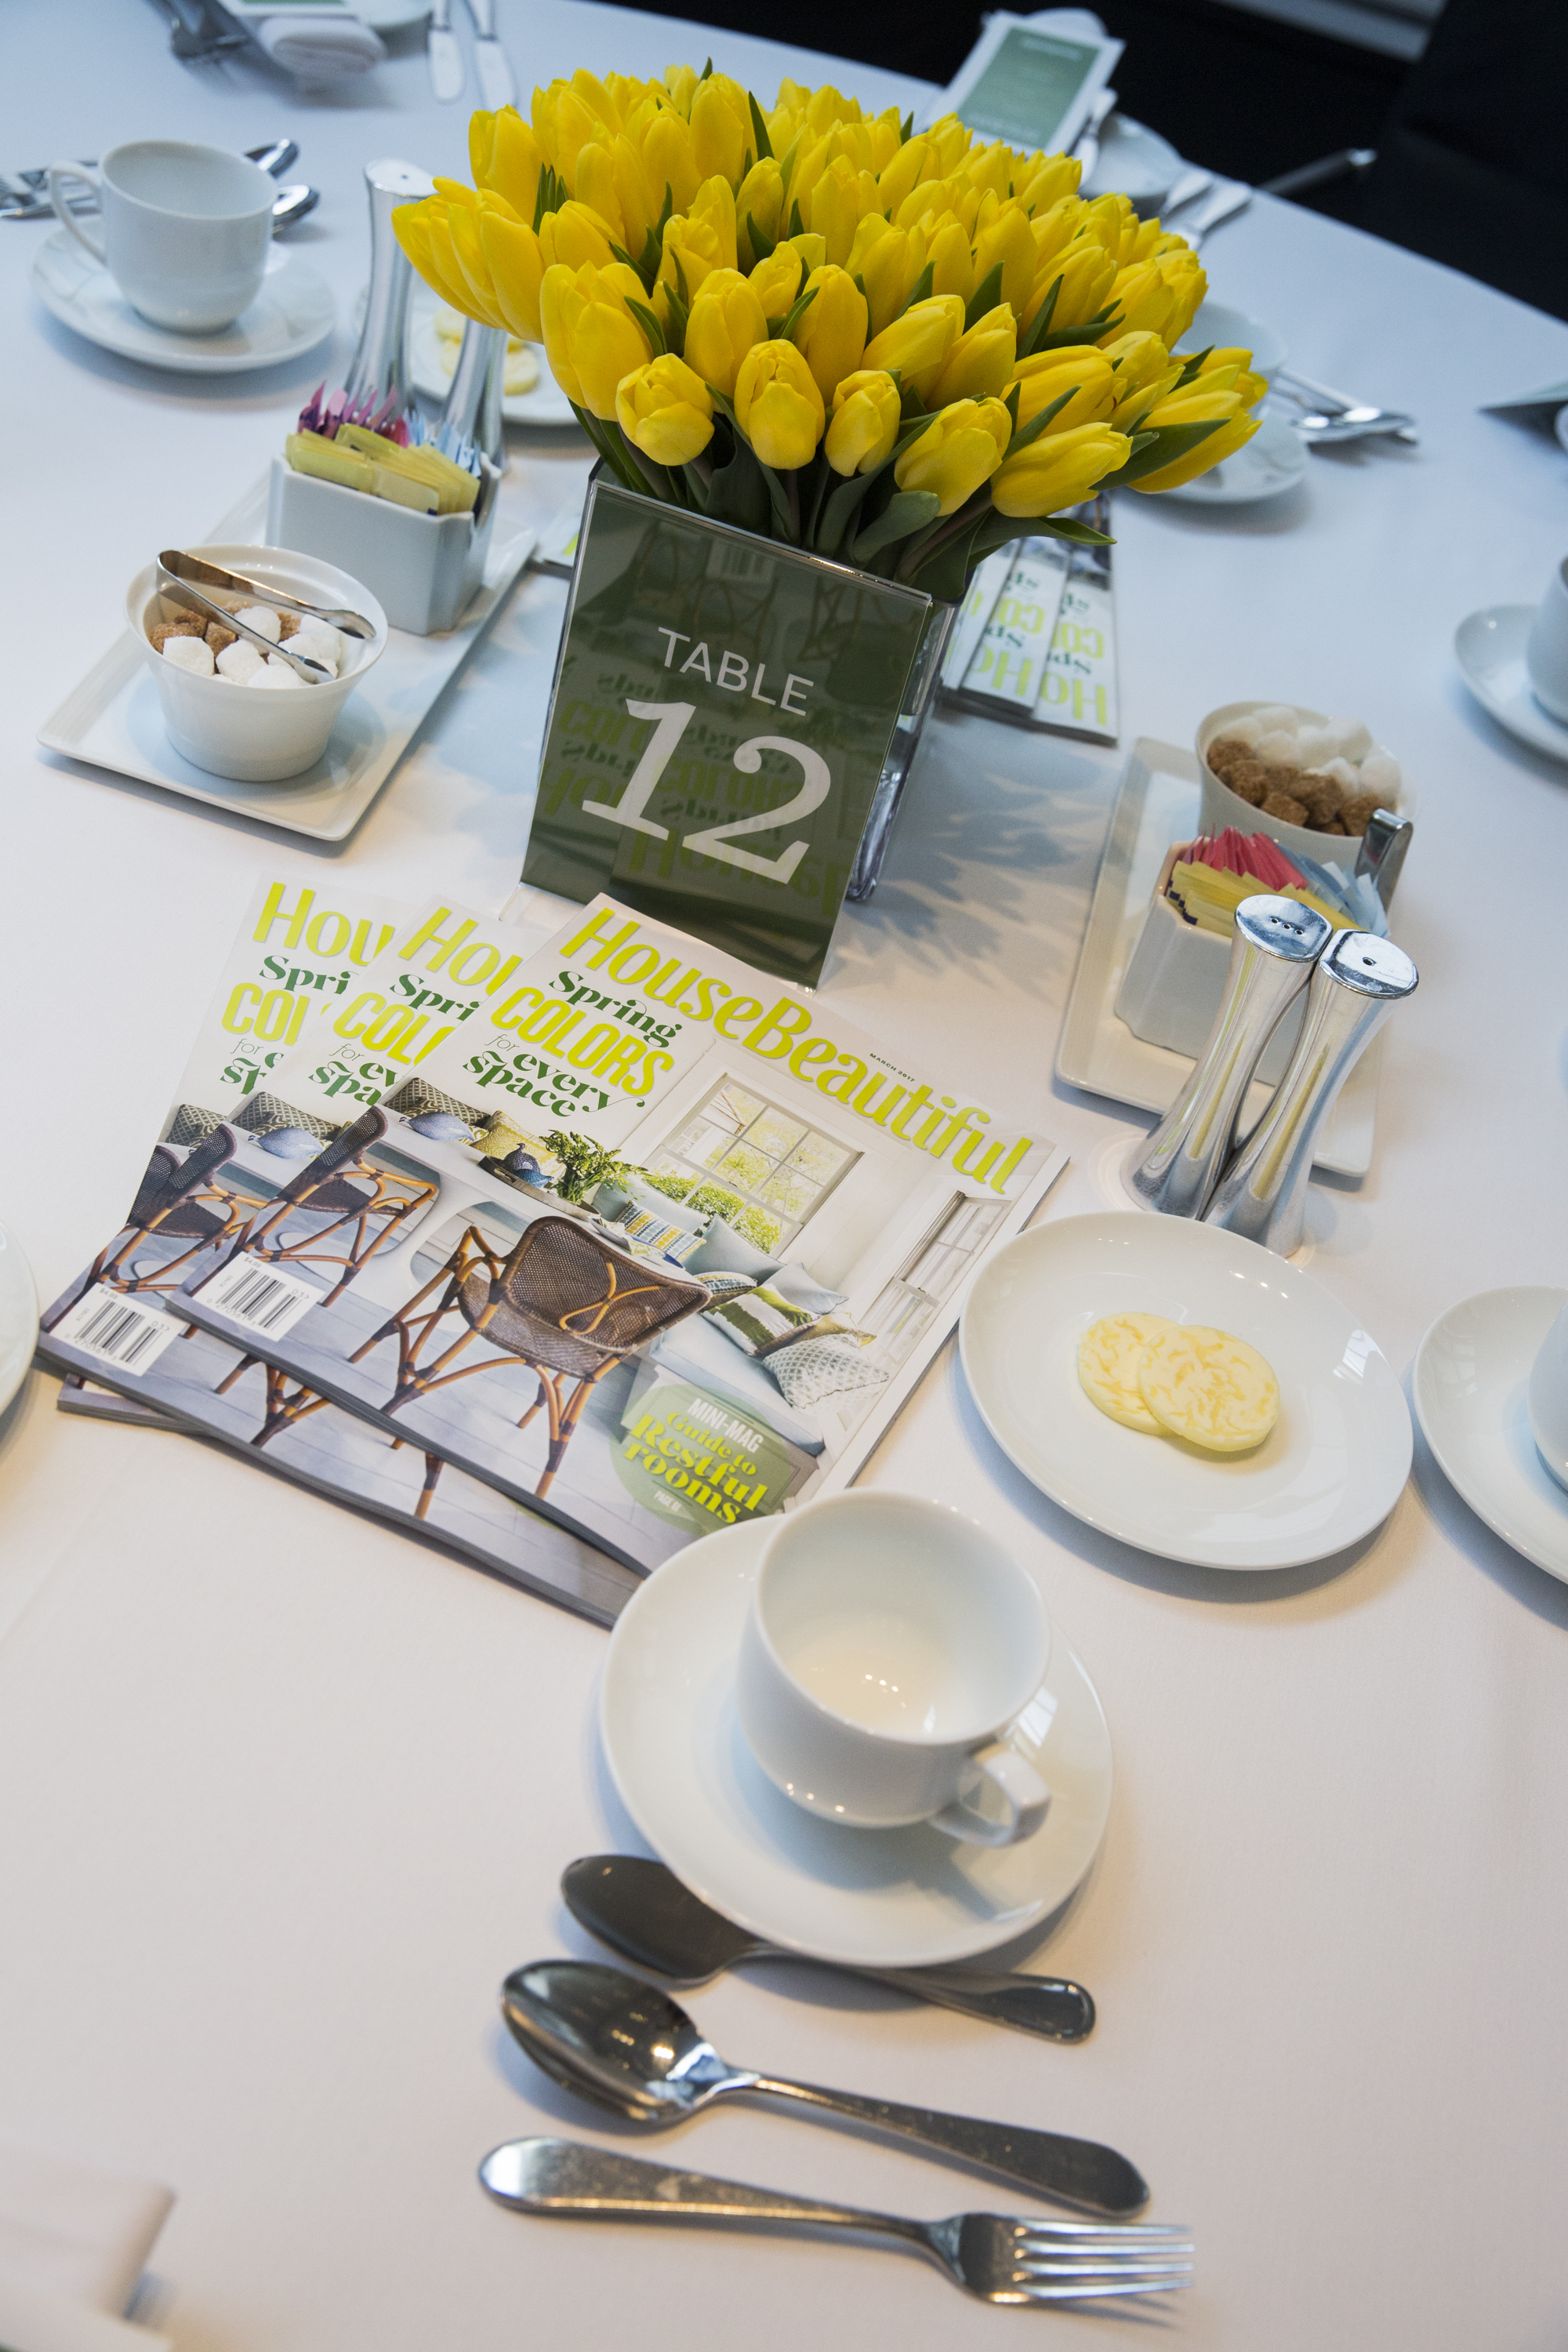 Table setting at the luncheon